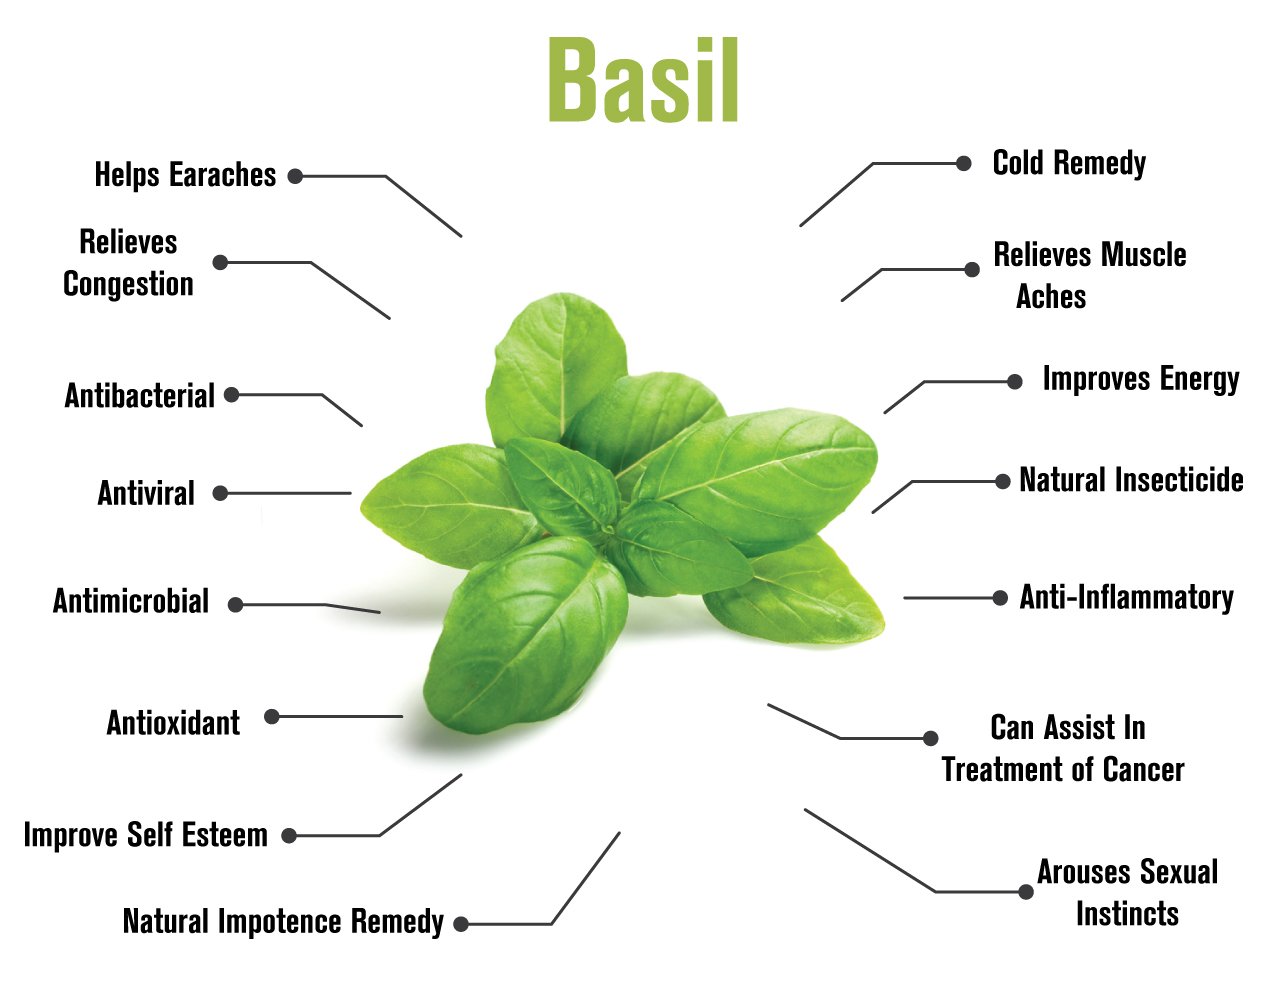 092517 Basil infographic